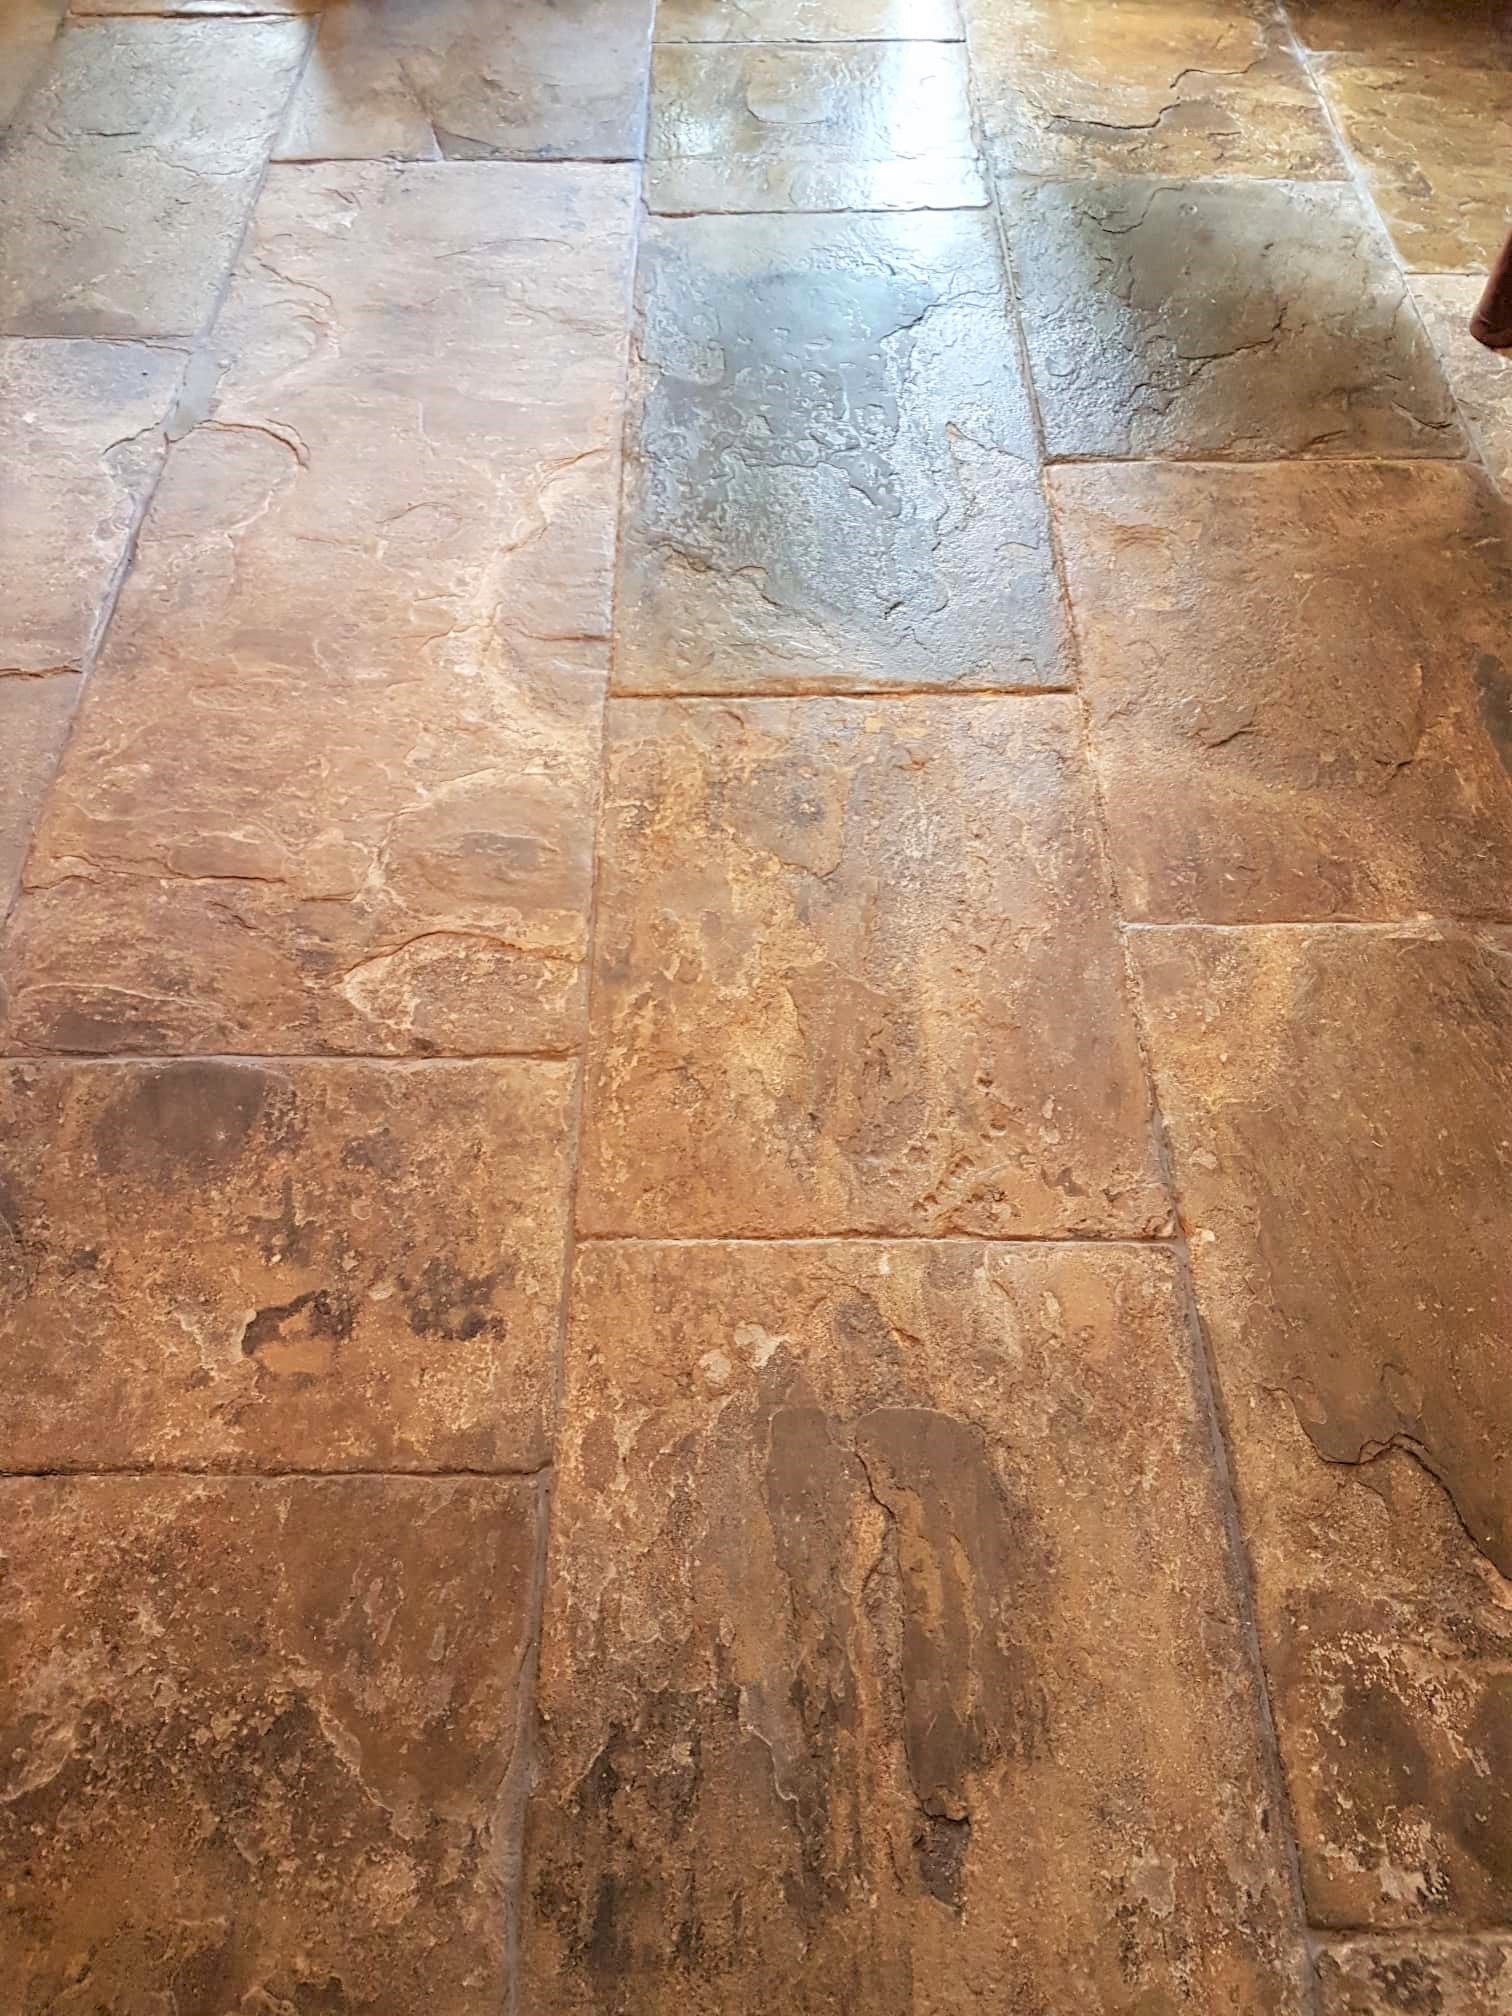 Flagstone Floor After Grouting Cleaning Leeds